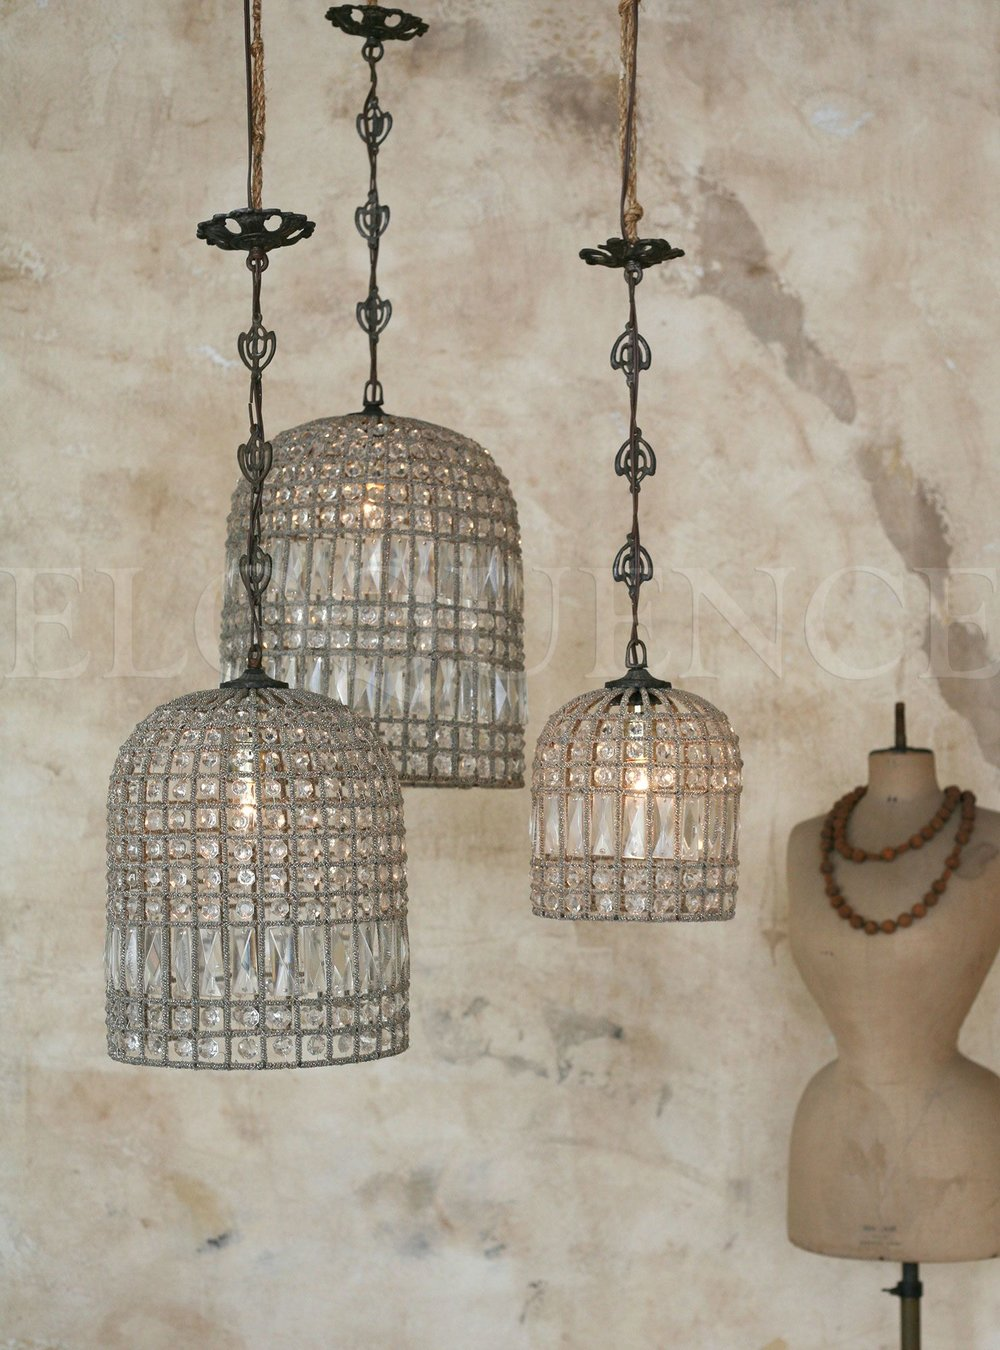 Antique Reproduction Birdcage Chandelier.jpg